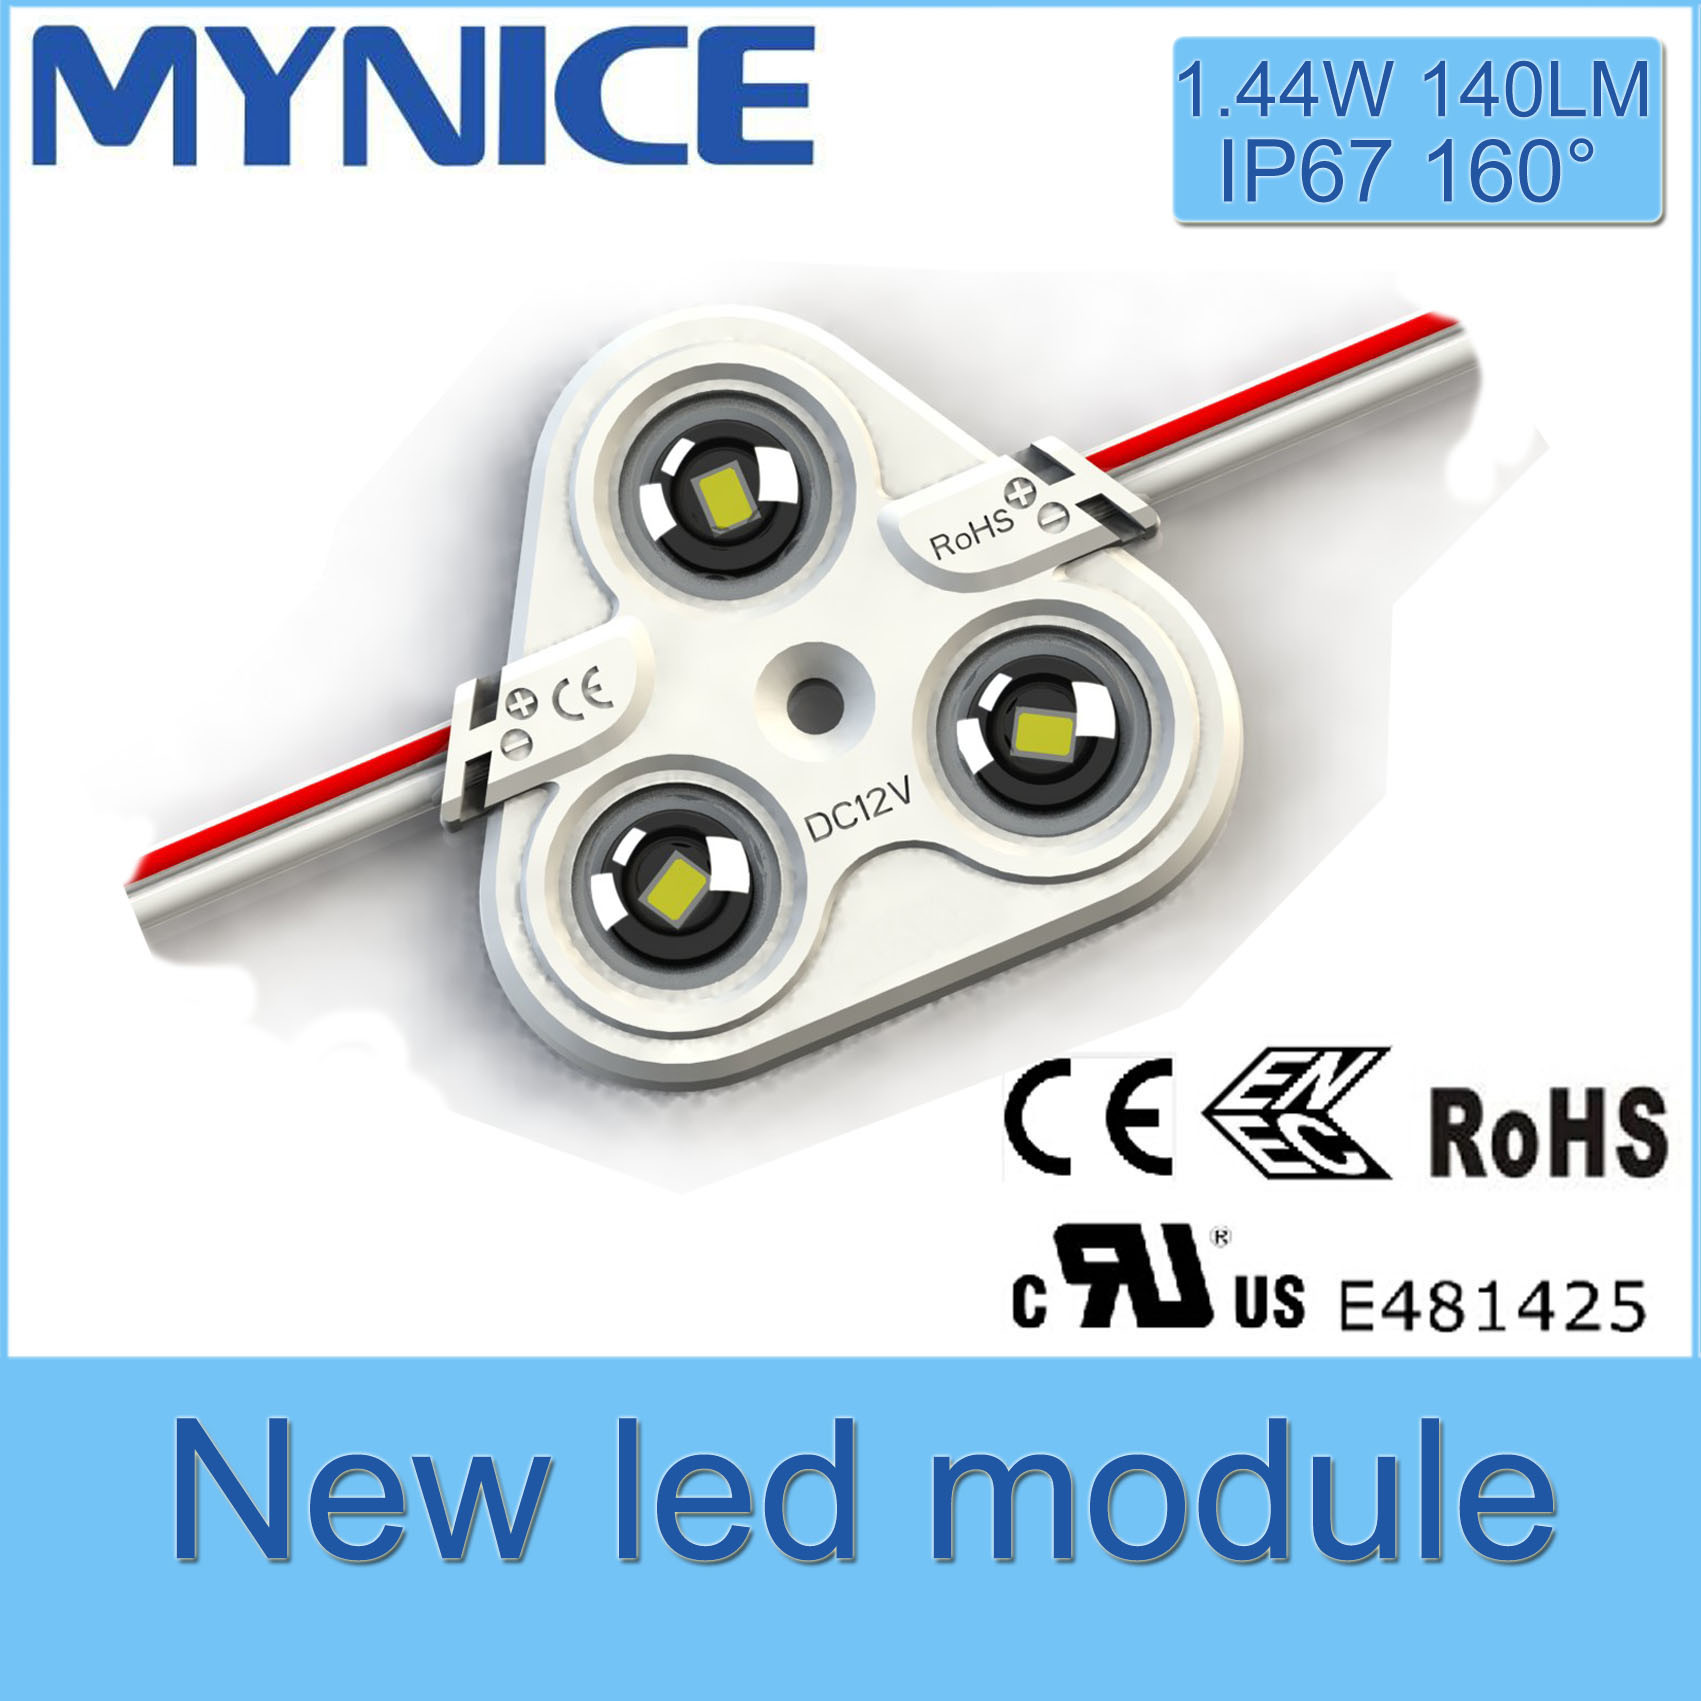 New Economical LED Injection Module DC12V Waterproof Ce/UL/Rohs Certificate